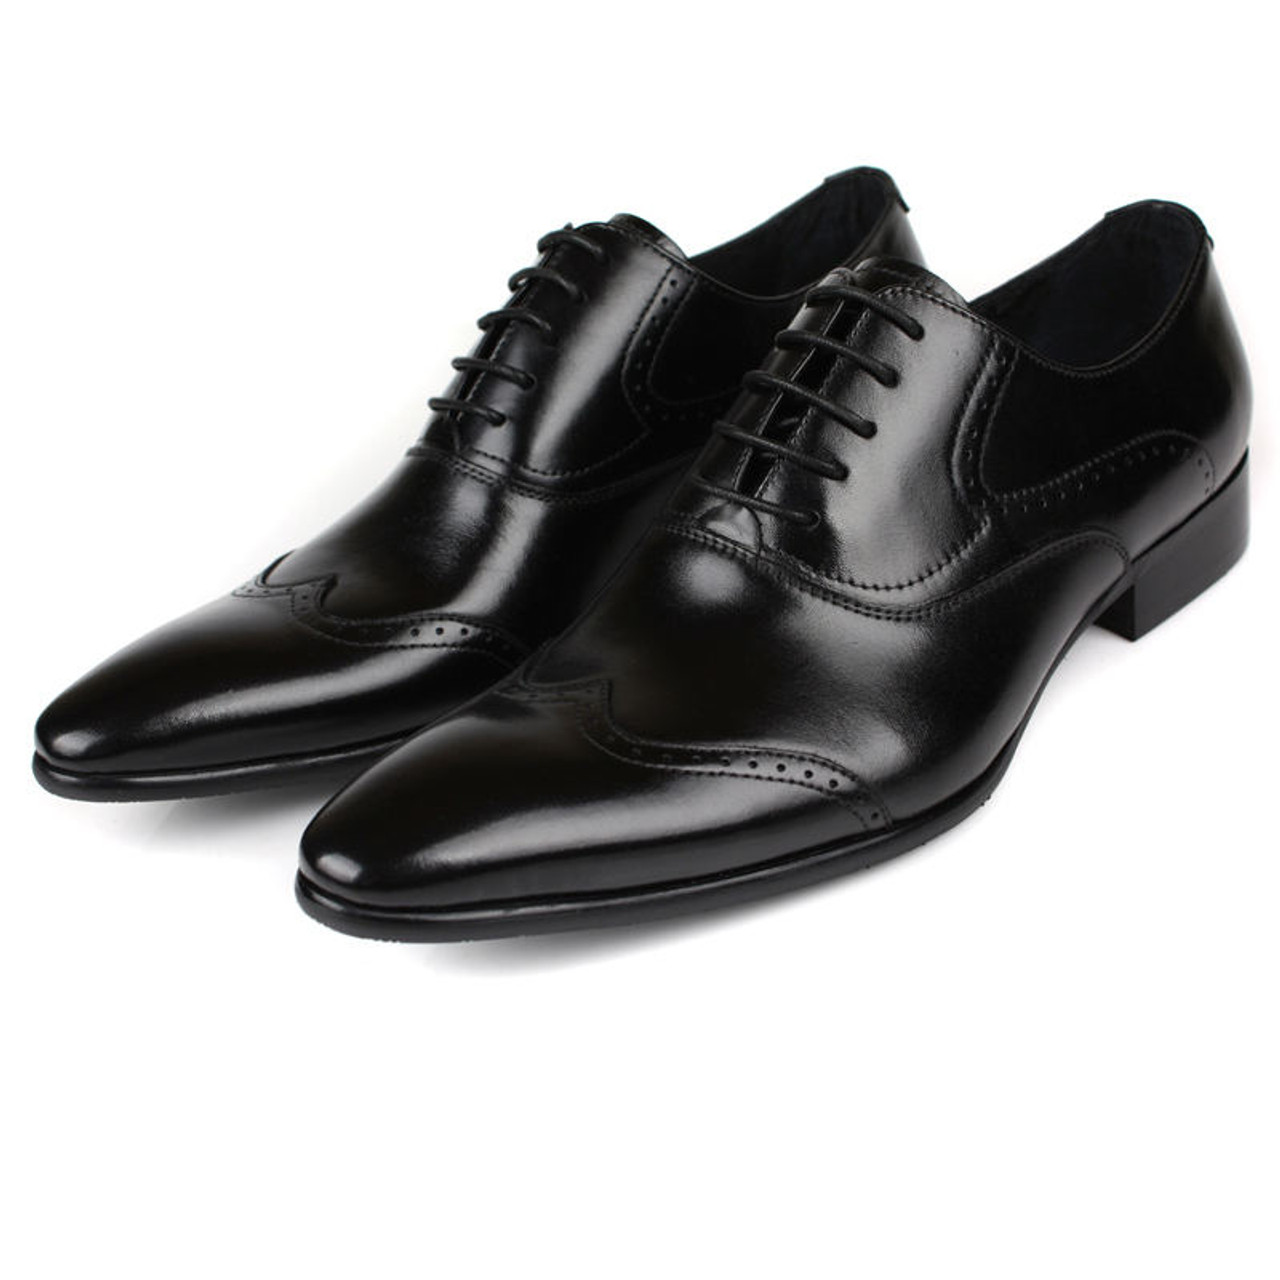 mens black brogue shoes sale online fashion black oxford